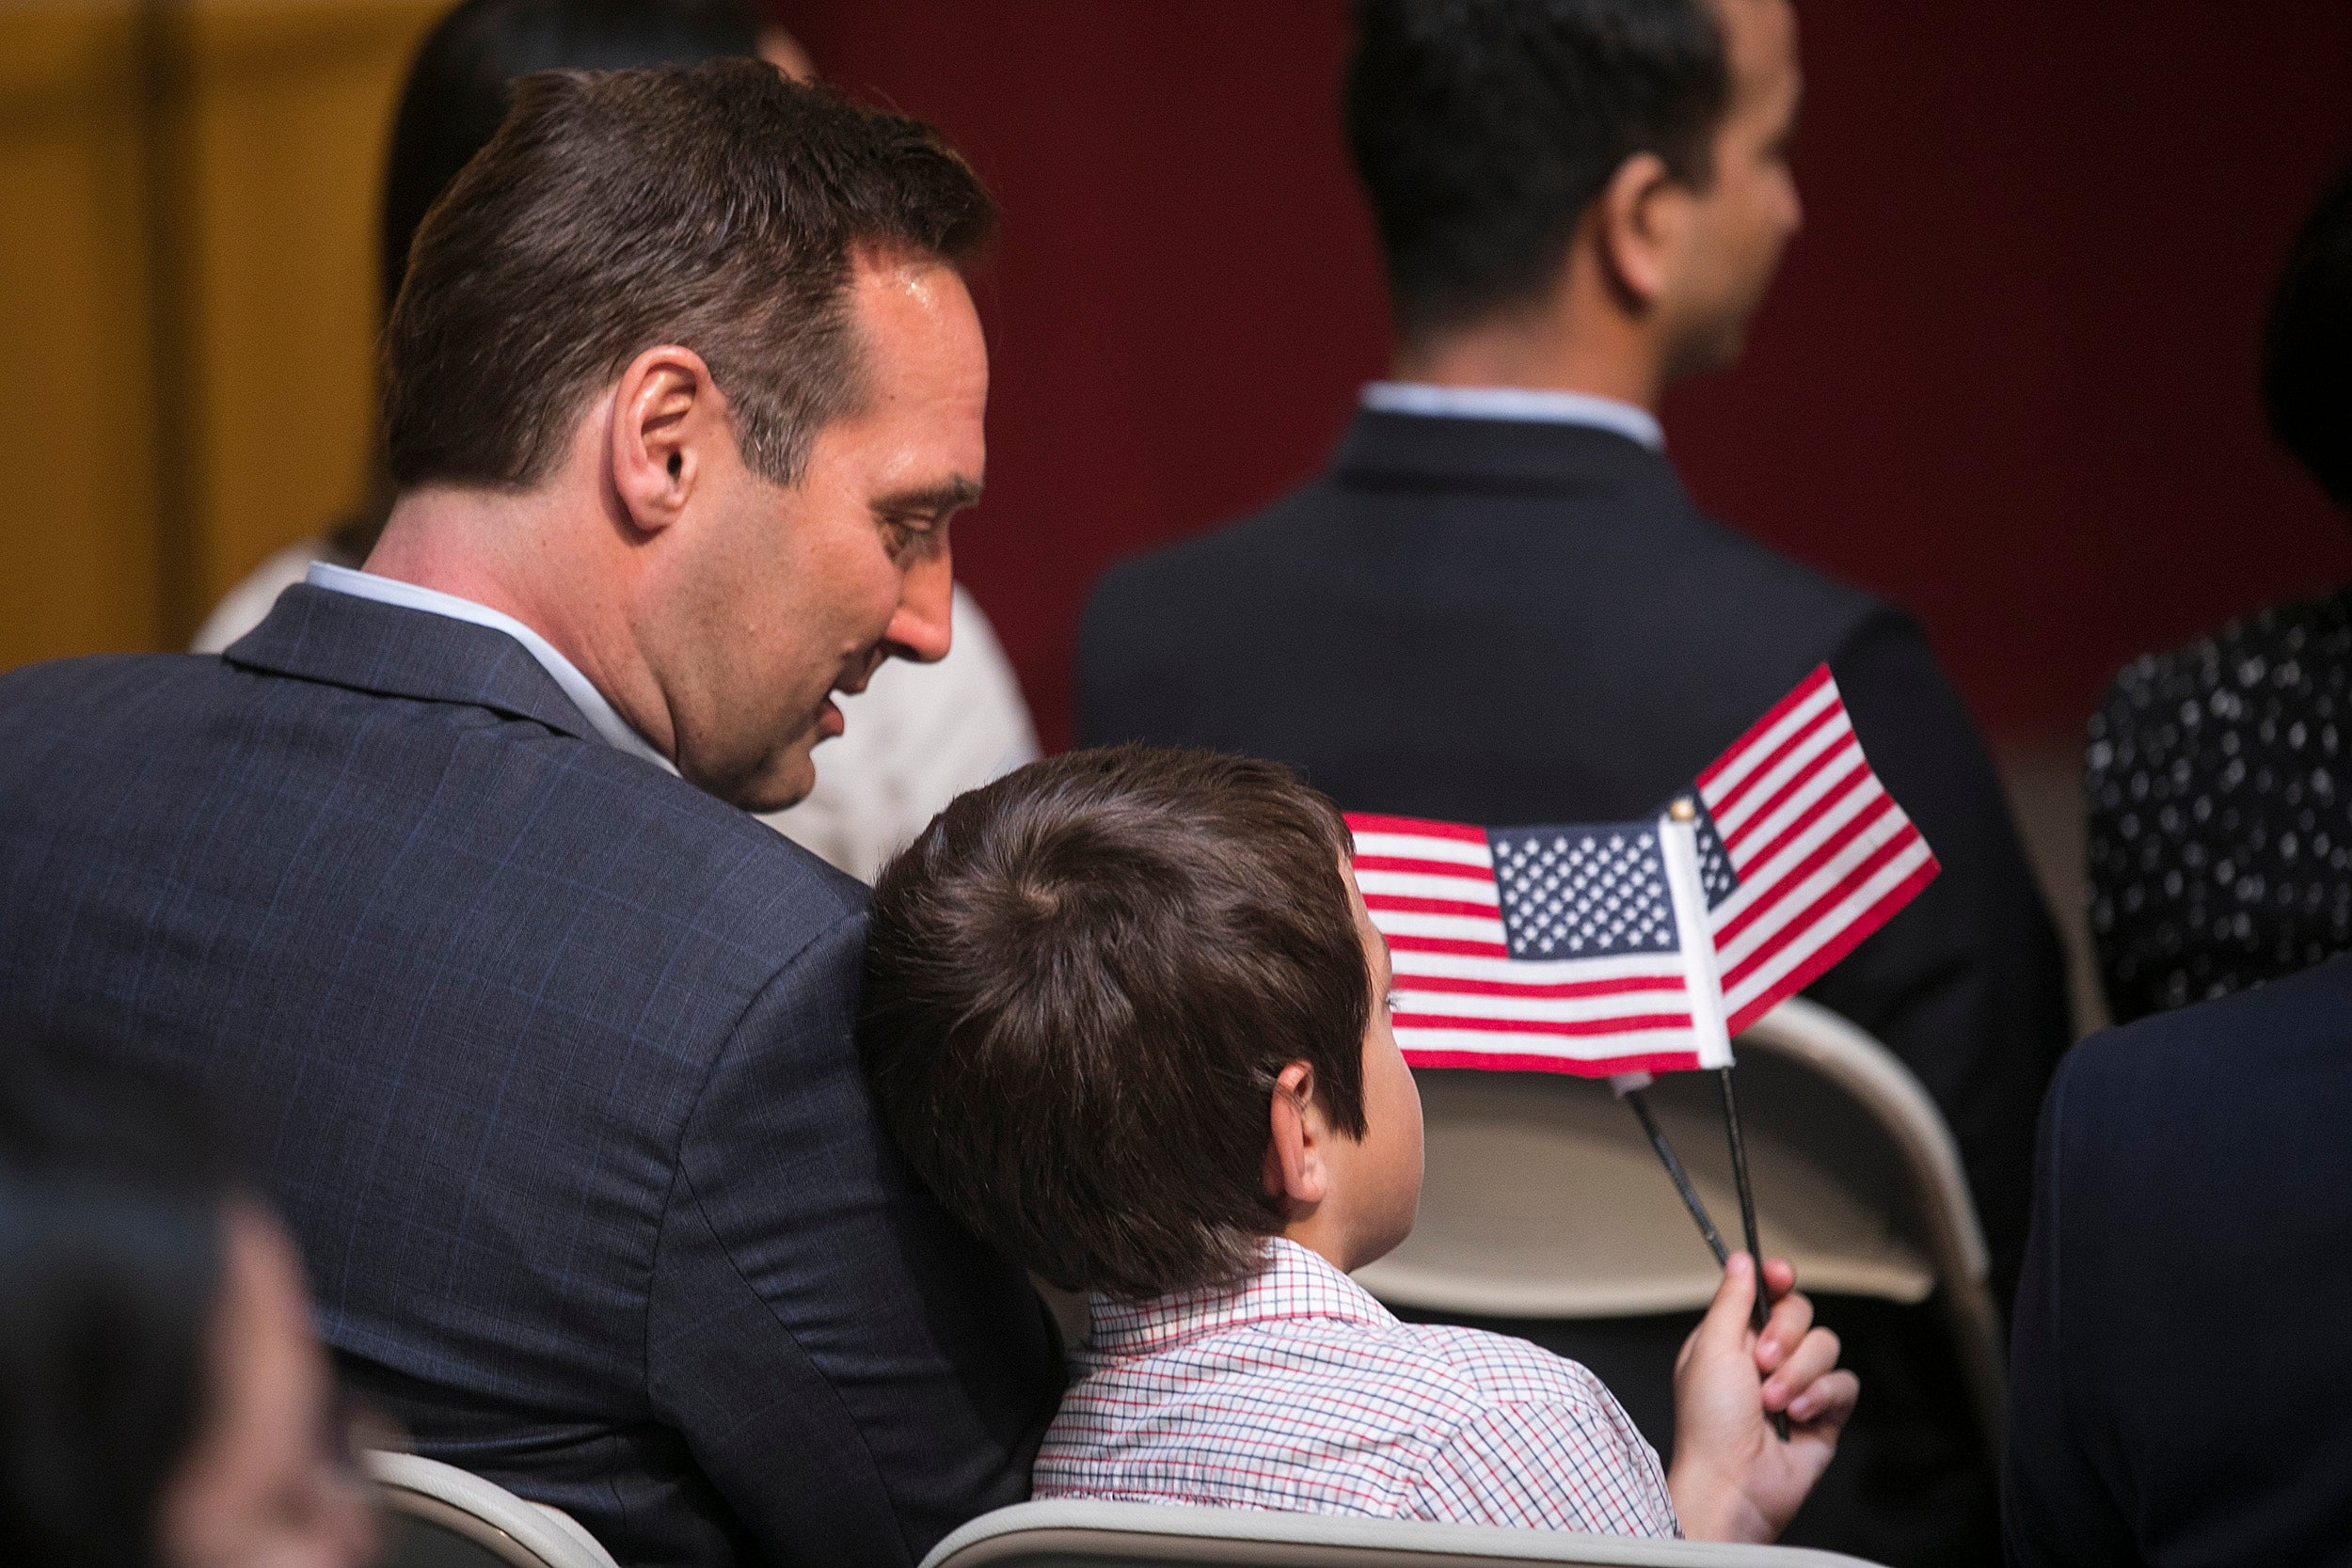 man sitting with son, holding American flag